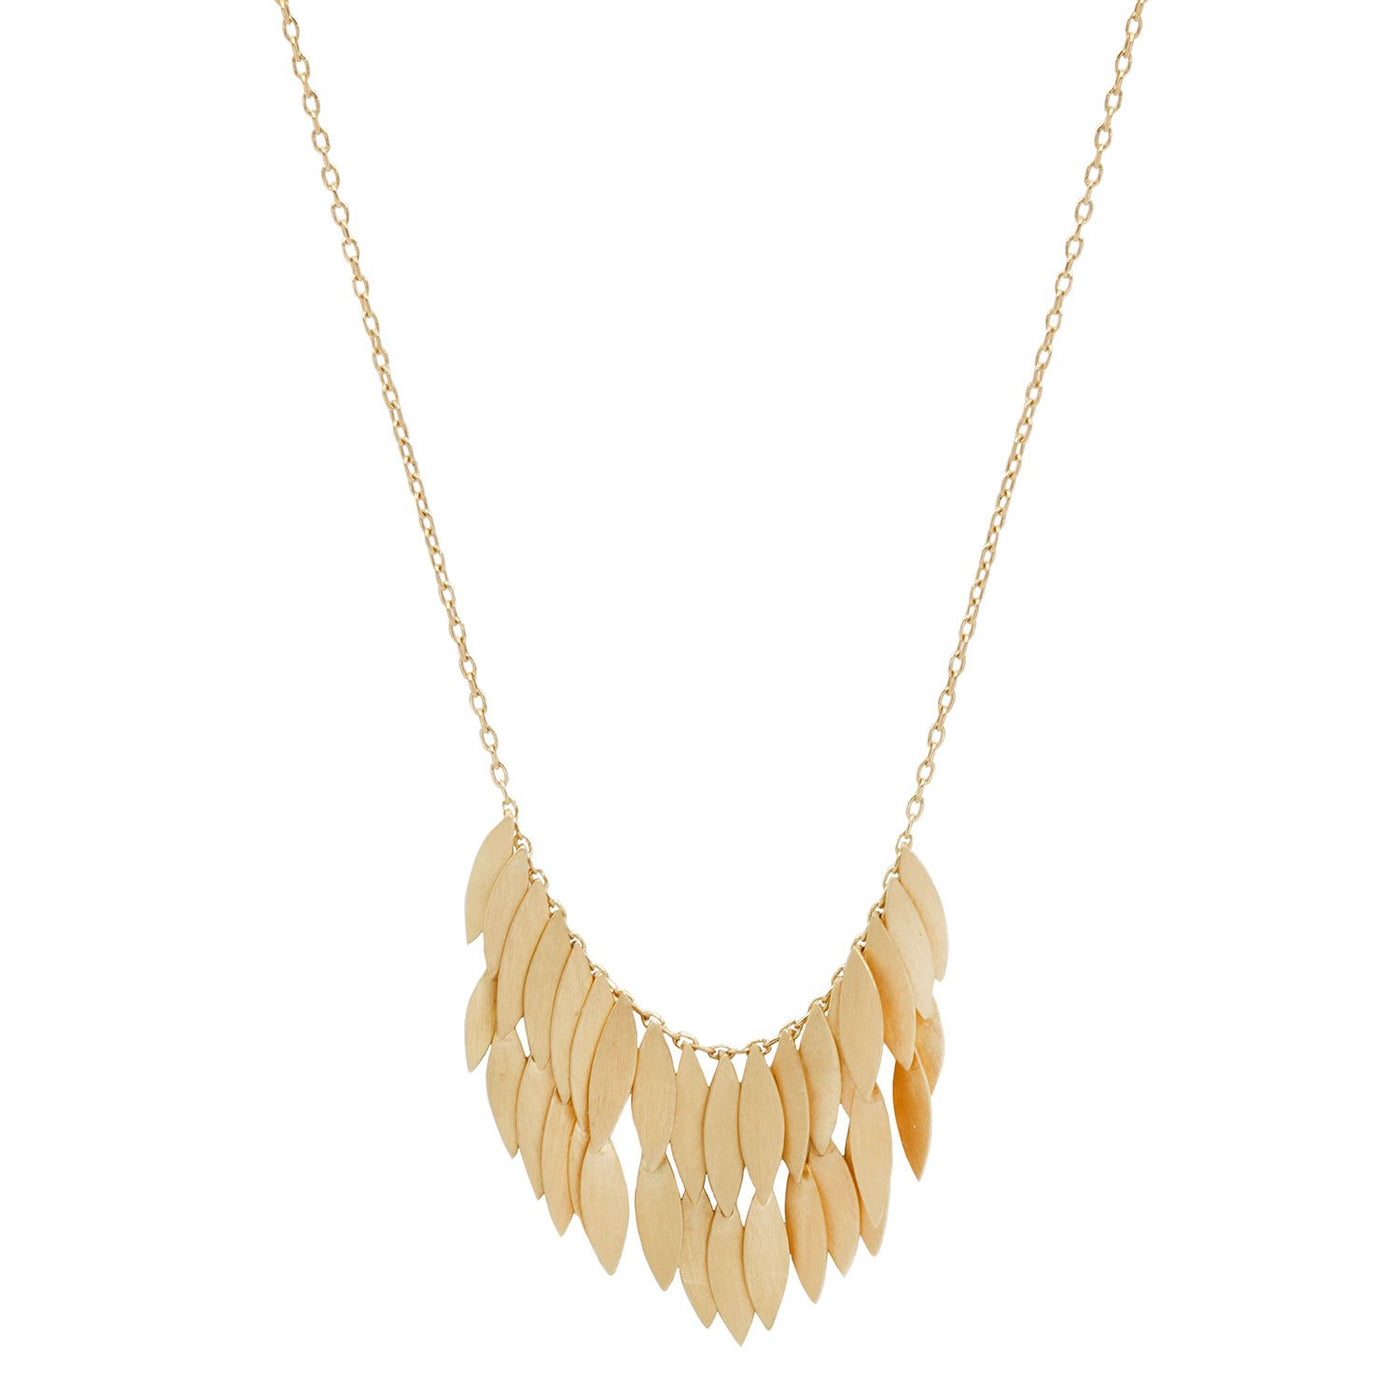 Sia Taylor Double Golden Leaf Necklace